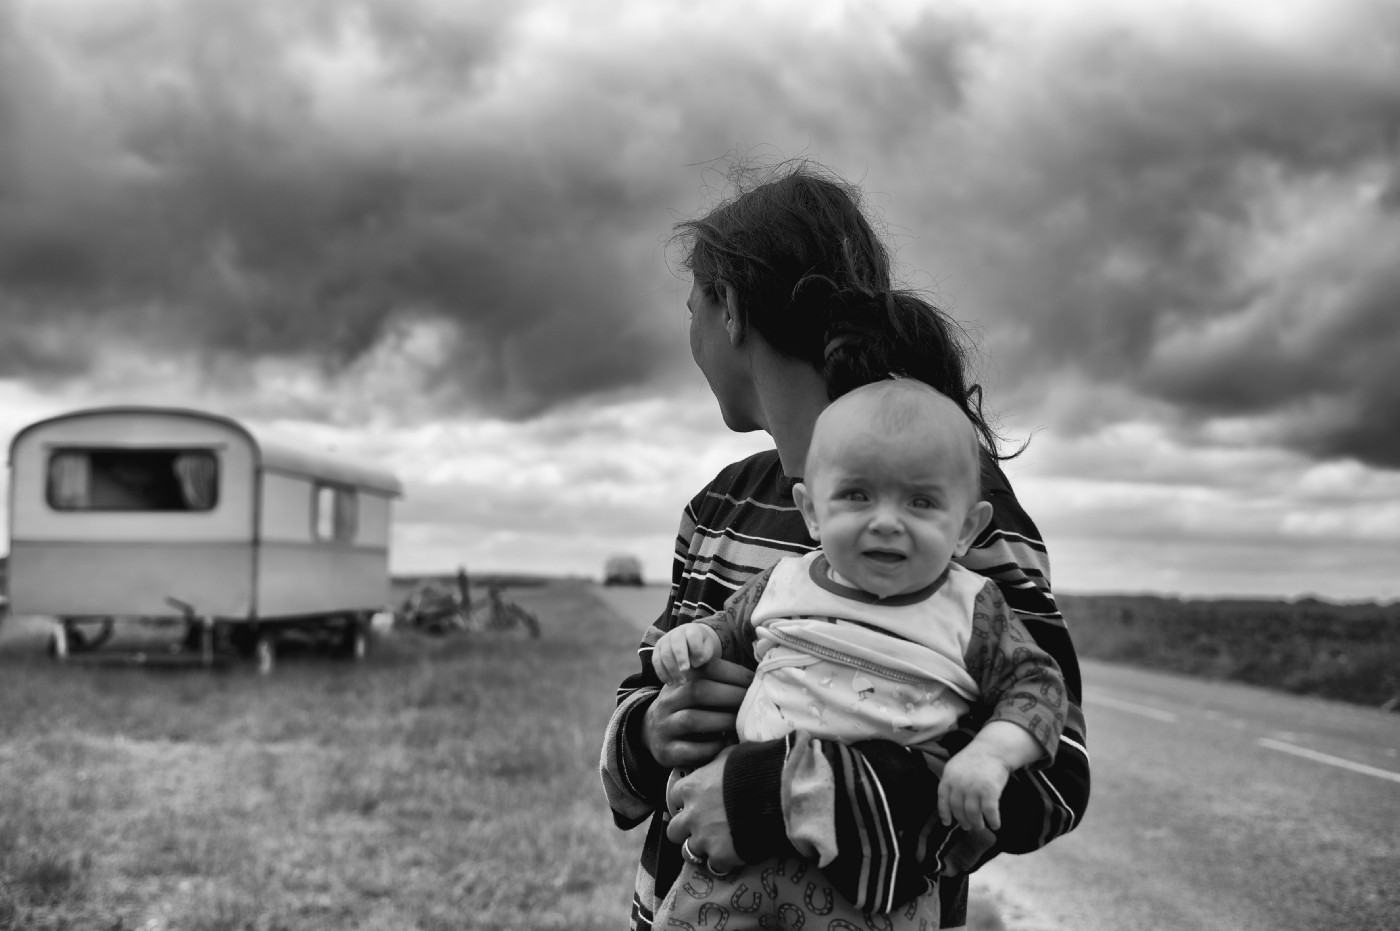 Baby looking at the camera while woman holding it looks behind her toward a trailer.